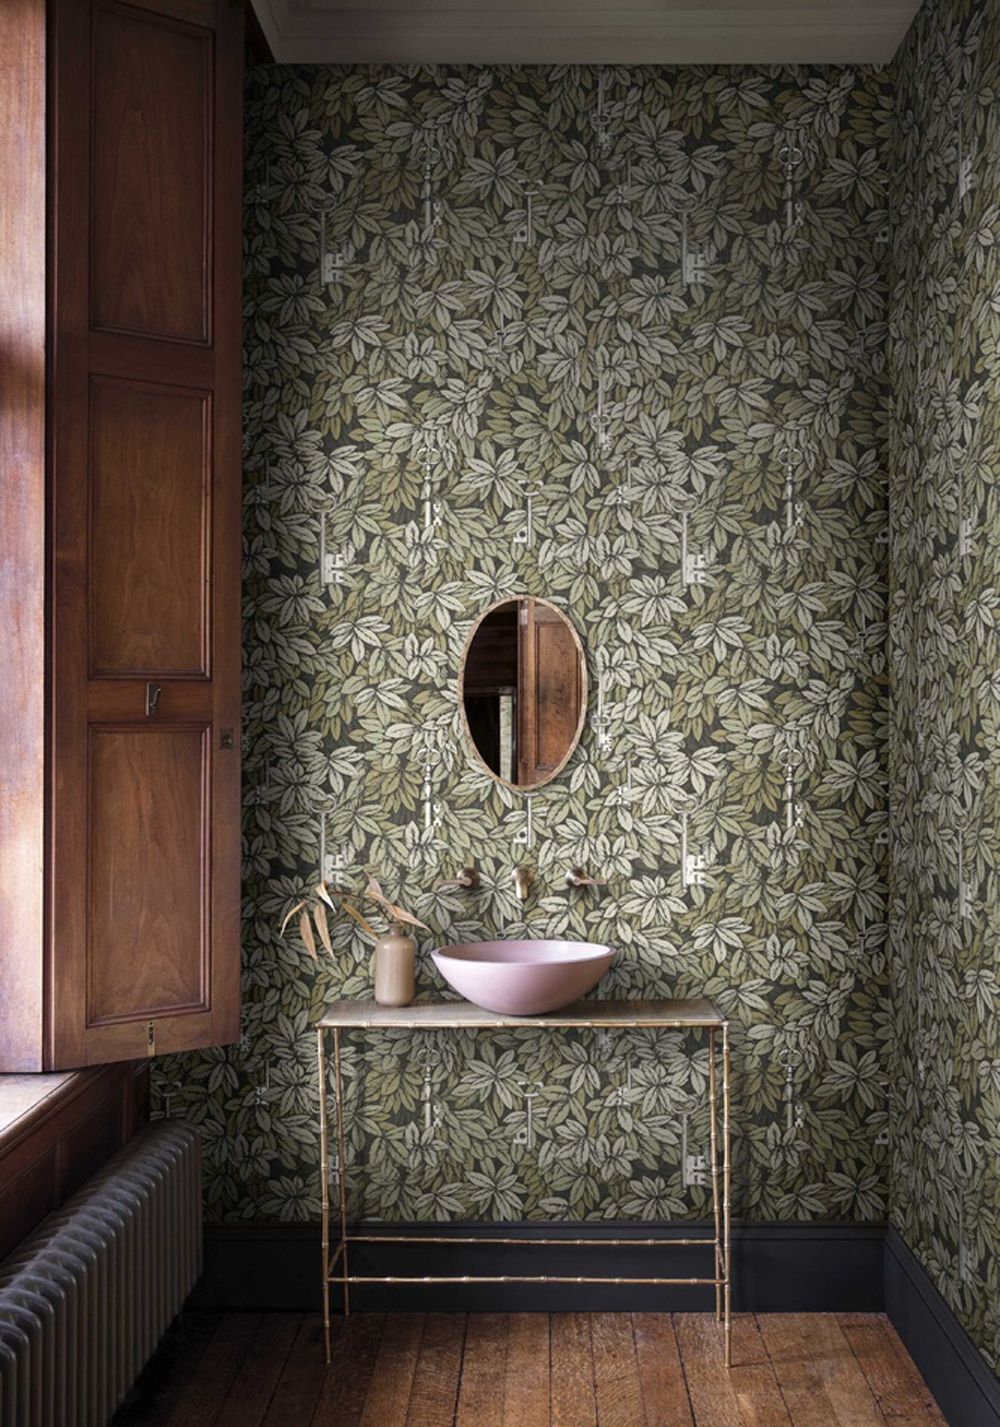 Best botanical wallpapers || Cole & Son - Chiavi Segrete - Gilver & Gold